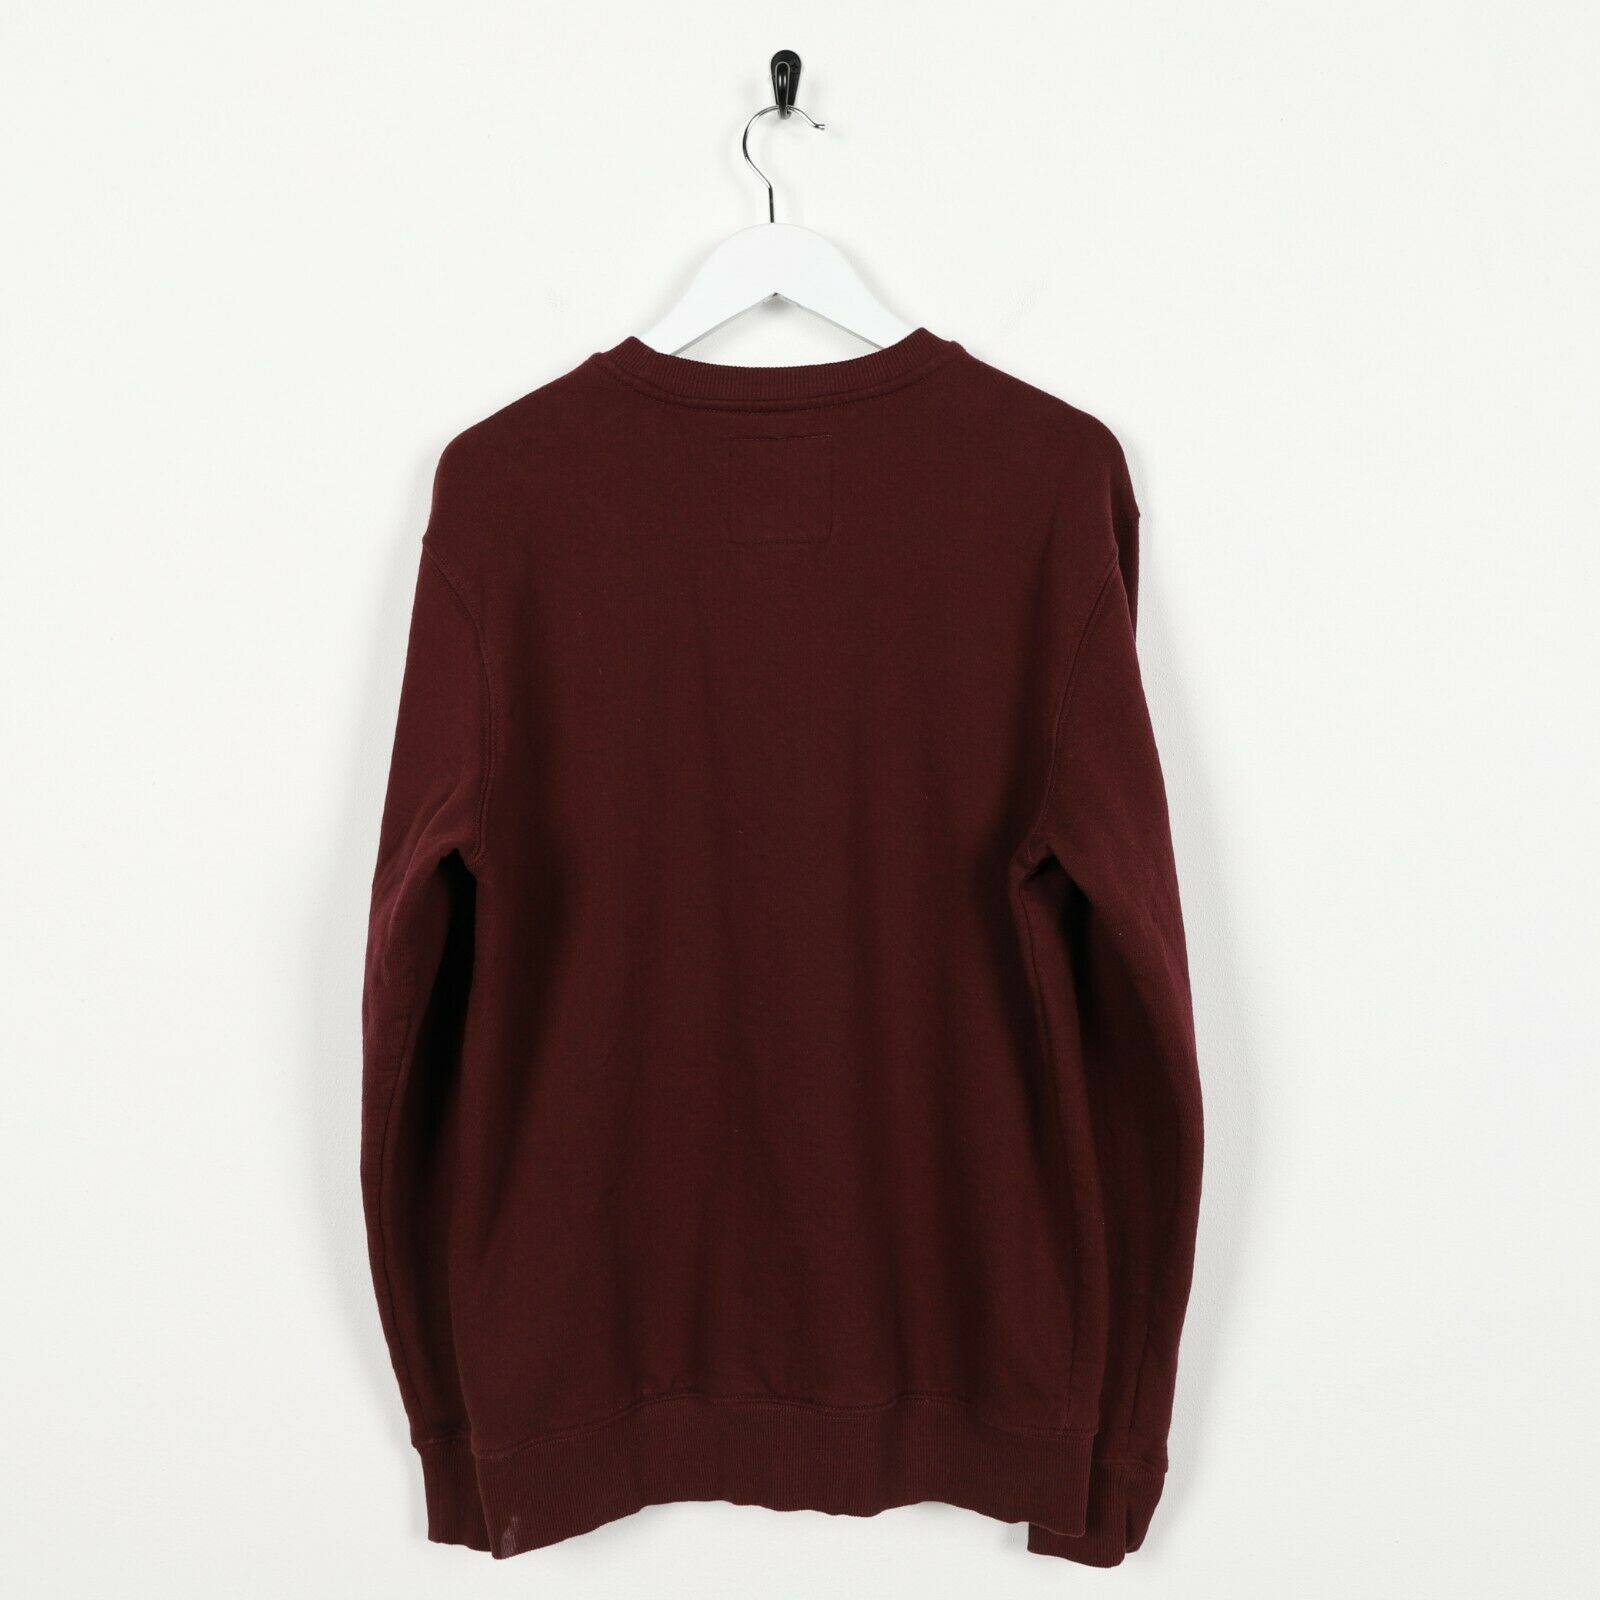 Vintage VANS Spell Out Logo Sweatshirt Jumper Burgundy Red | Small S